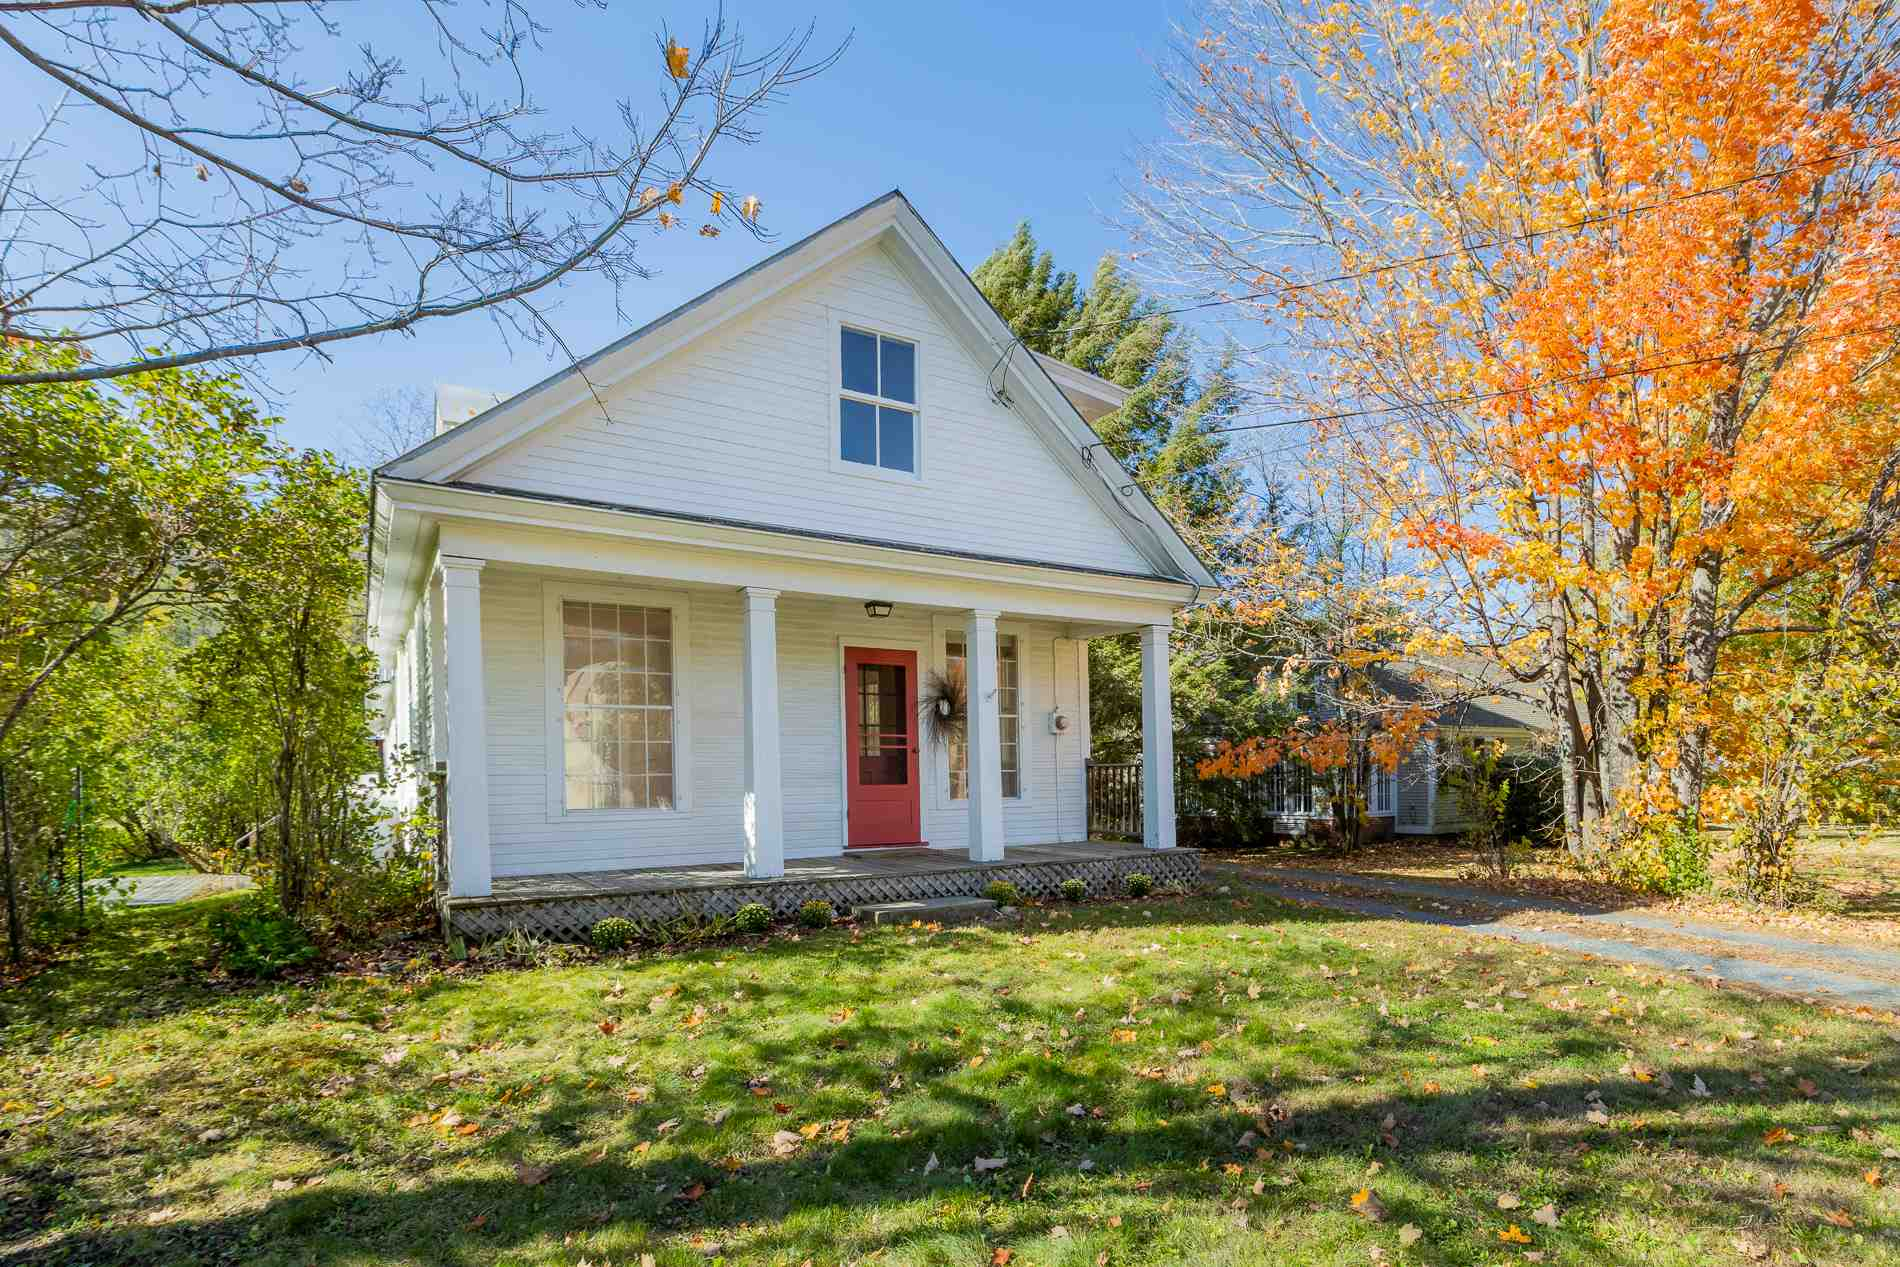 MLS 4834886: 9 Cornish Stage Road, Cornish NH